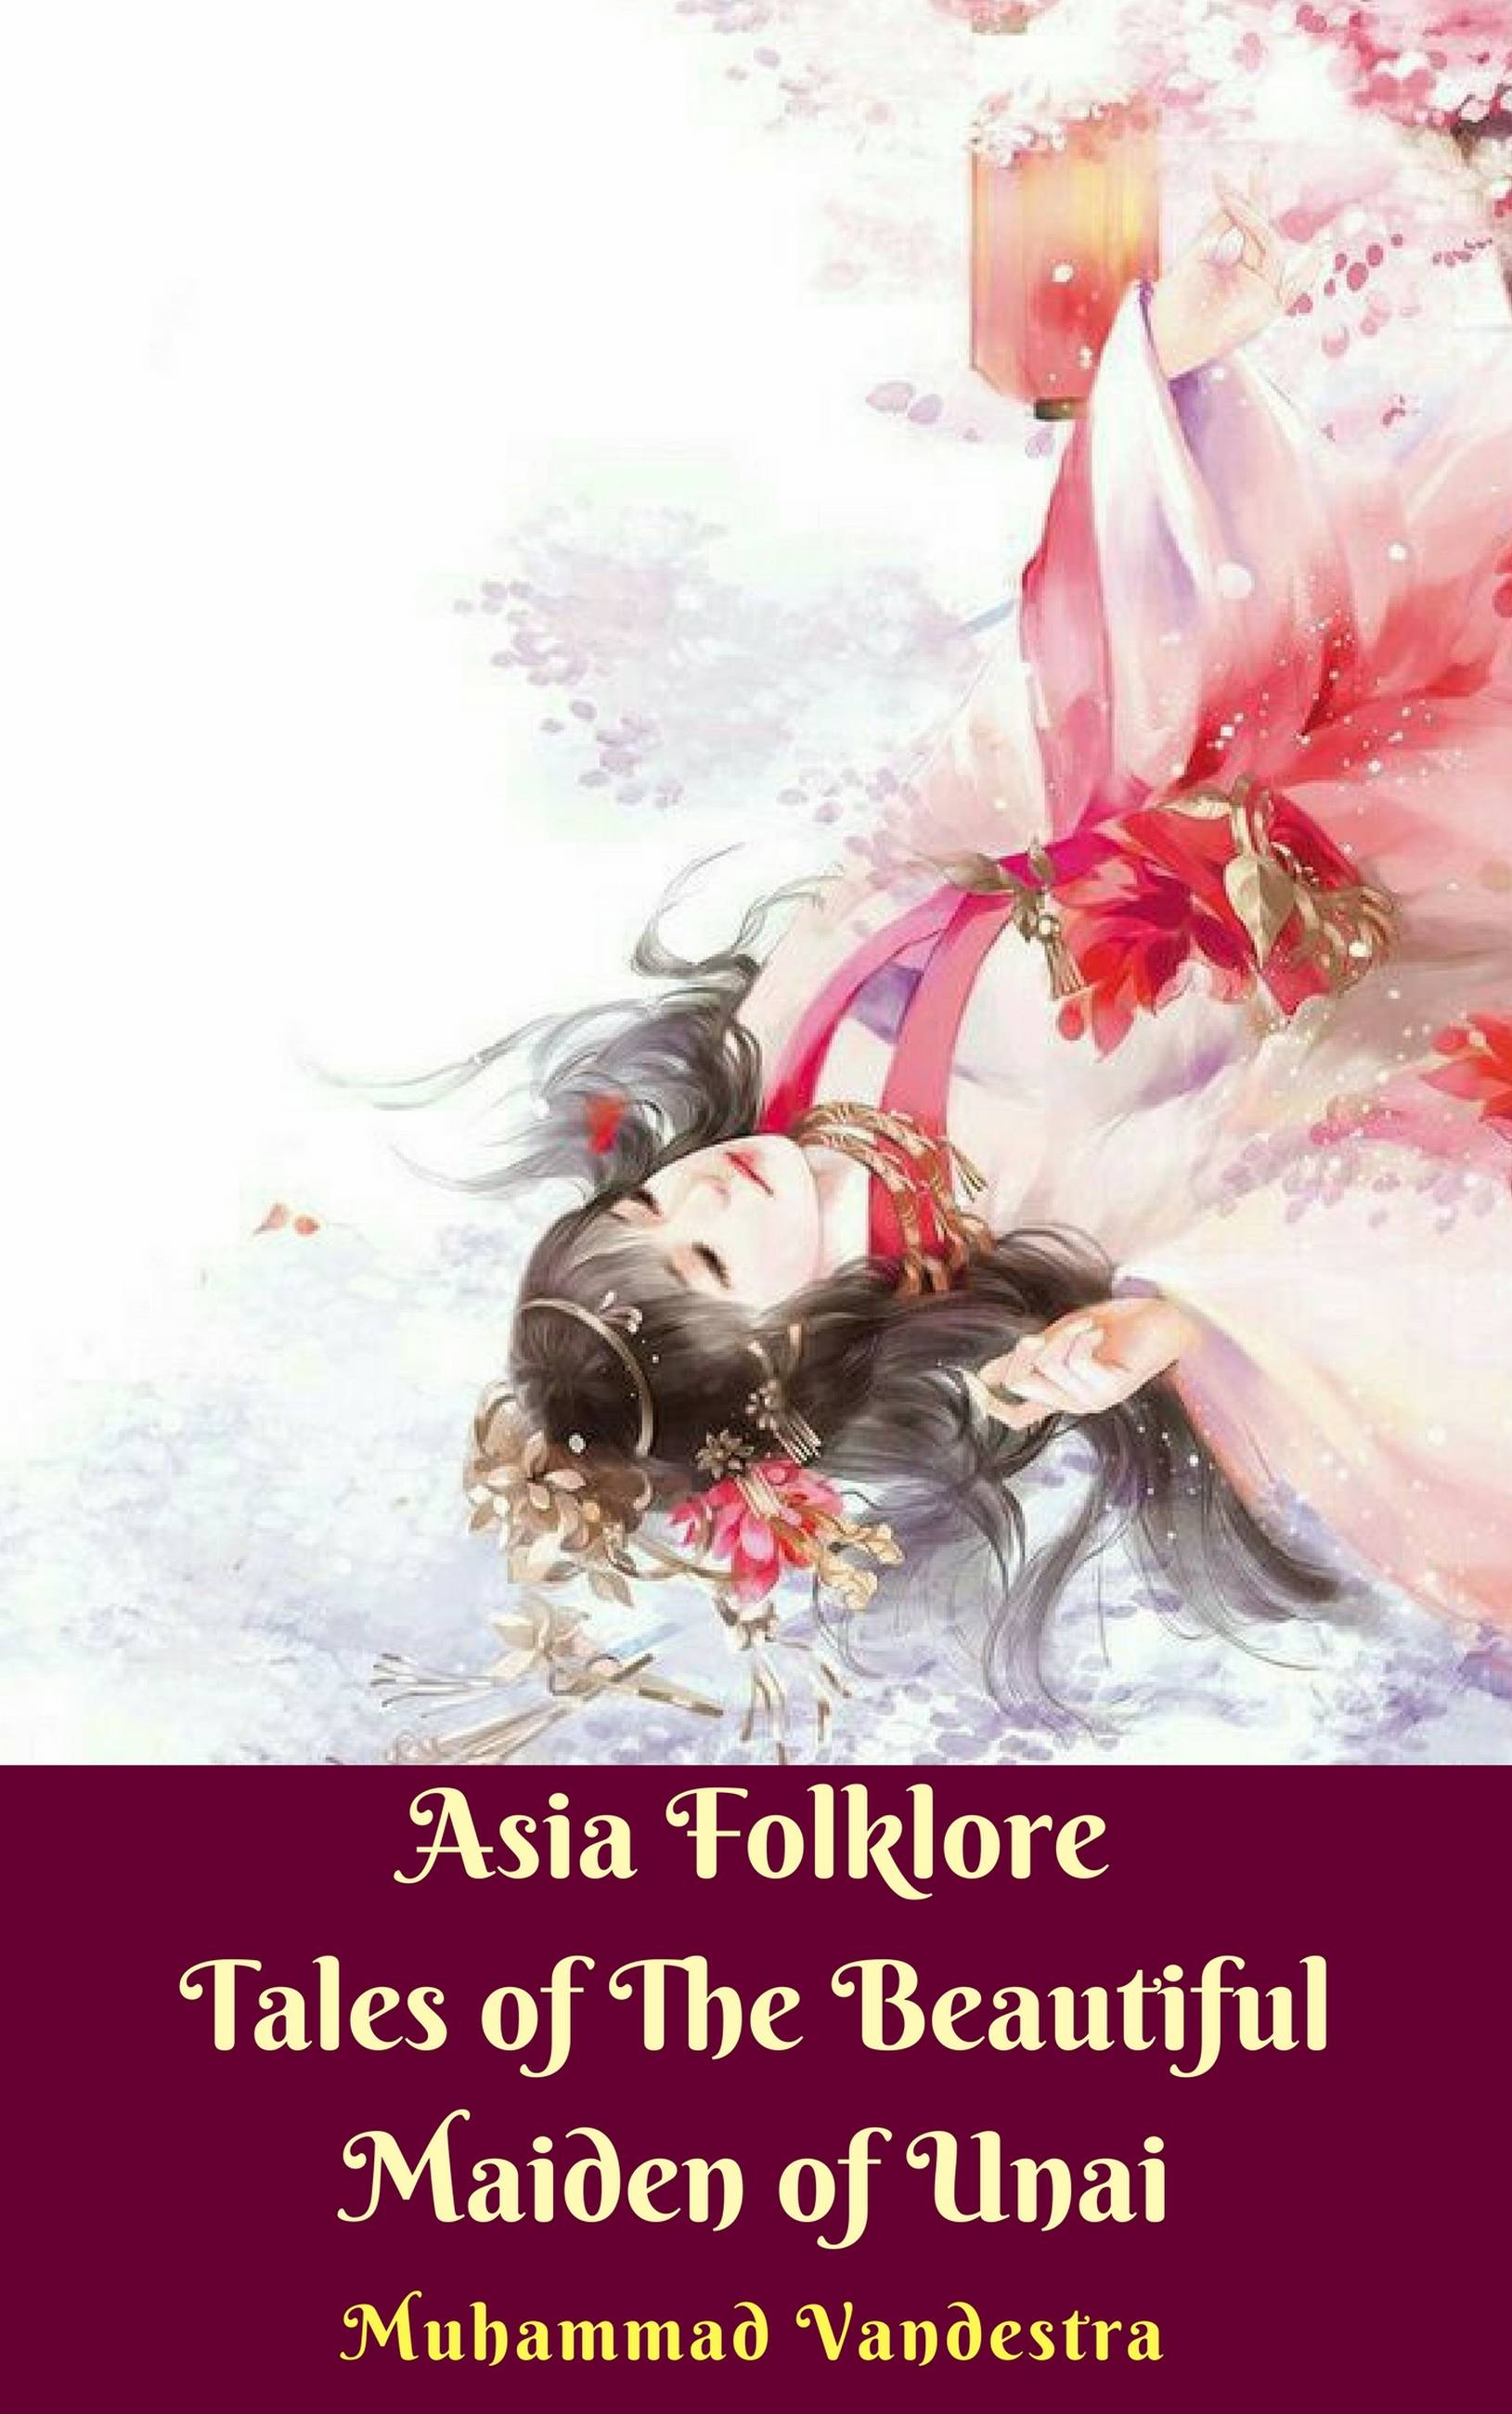 Asia Folklore Tales of The Beautiful Maiden of Unai